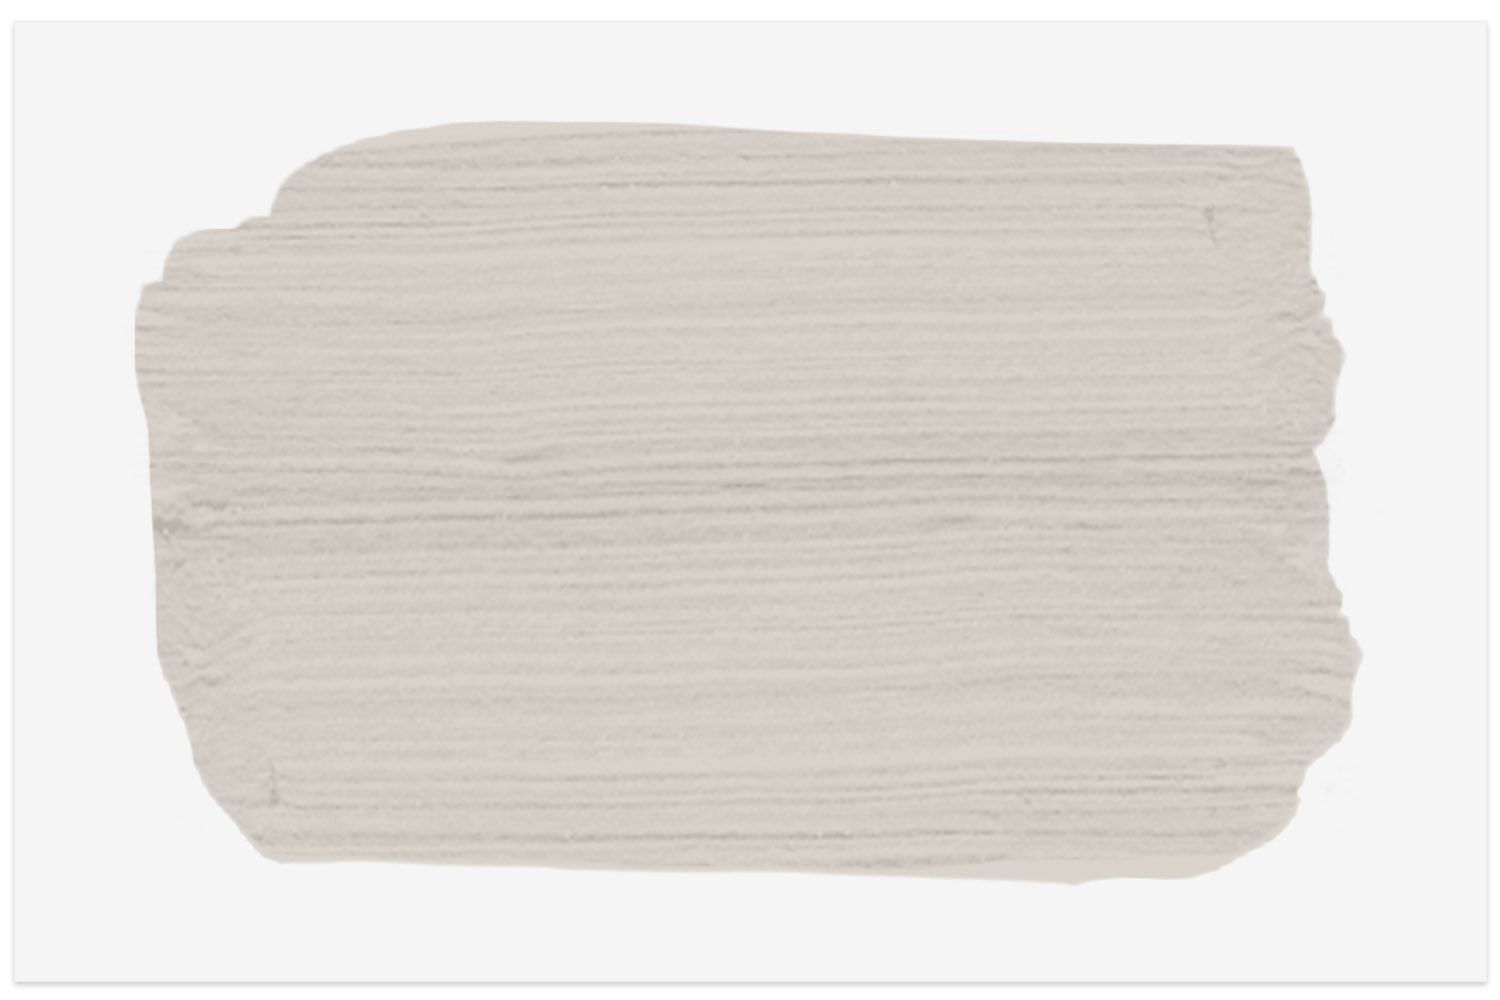 Moth Gray N200-1 paint swatch from Behr